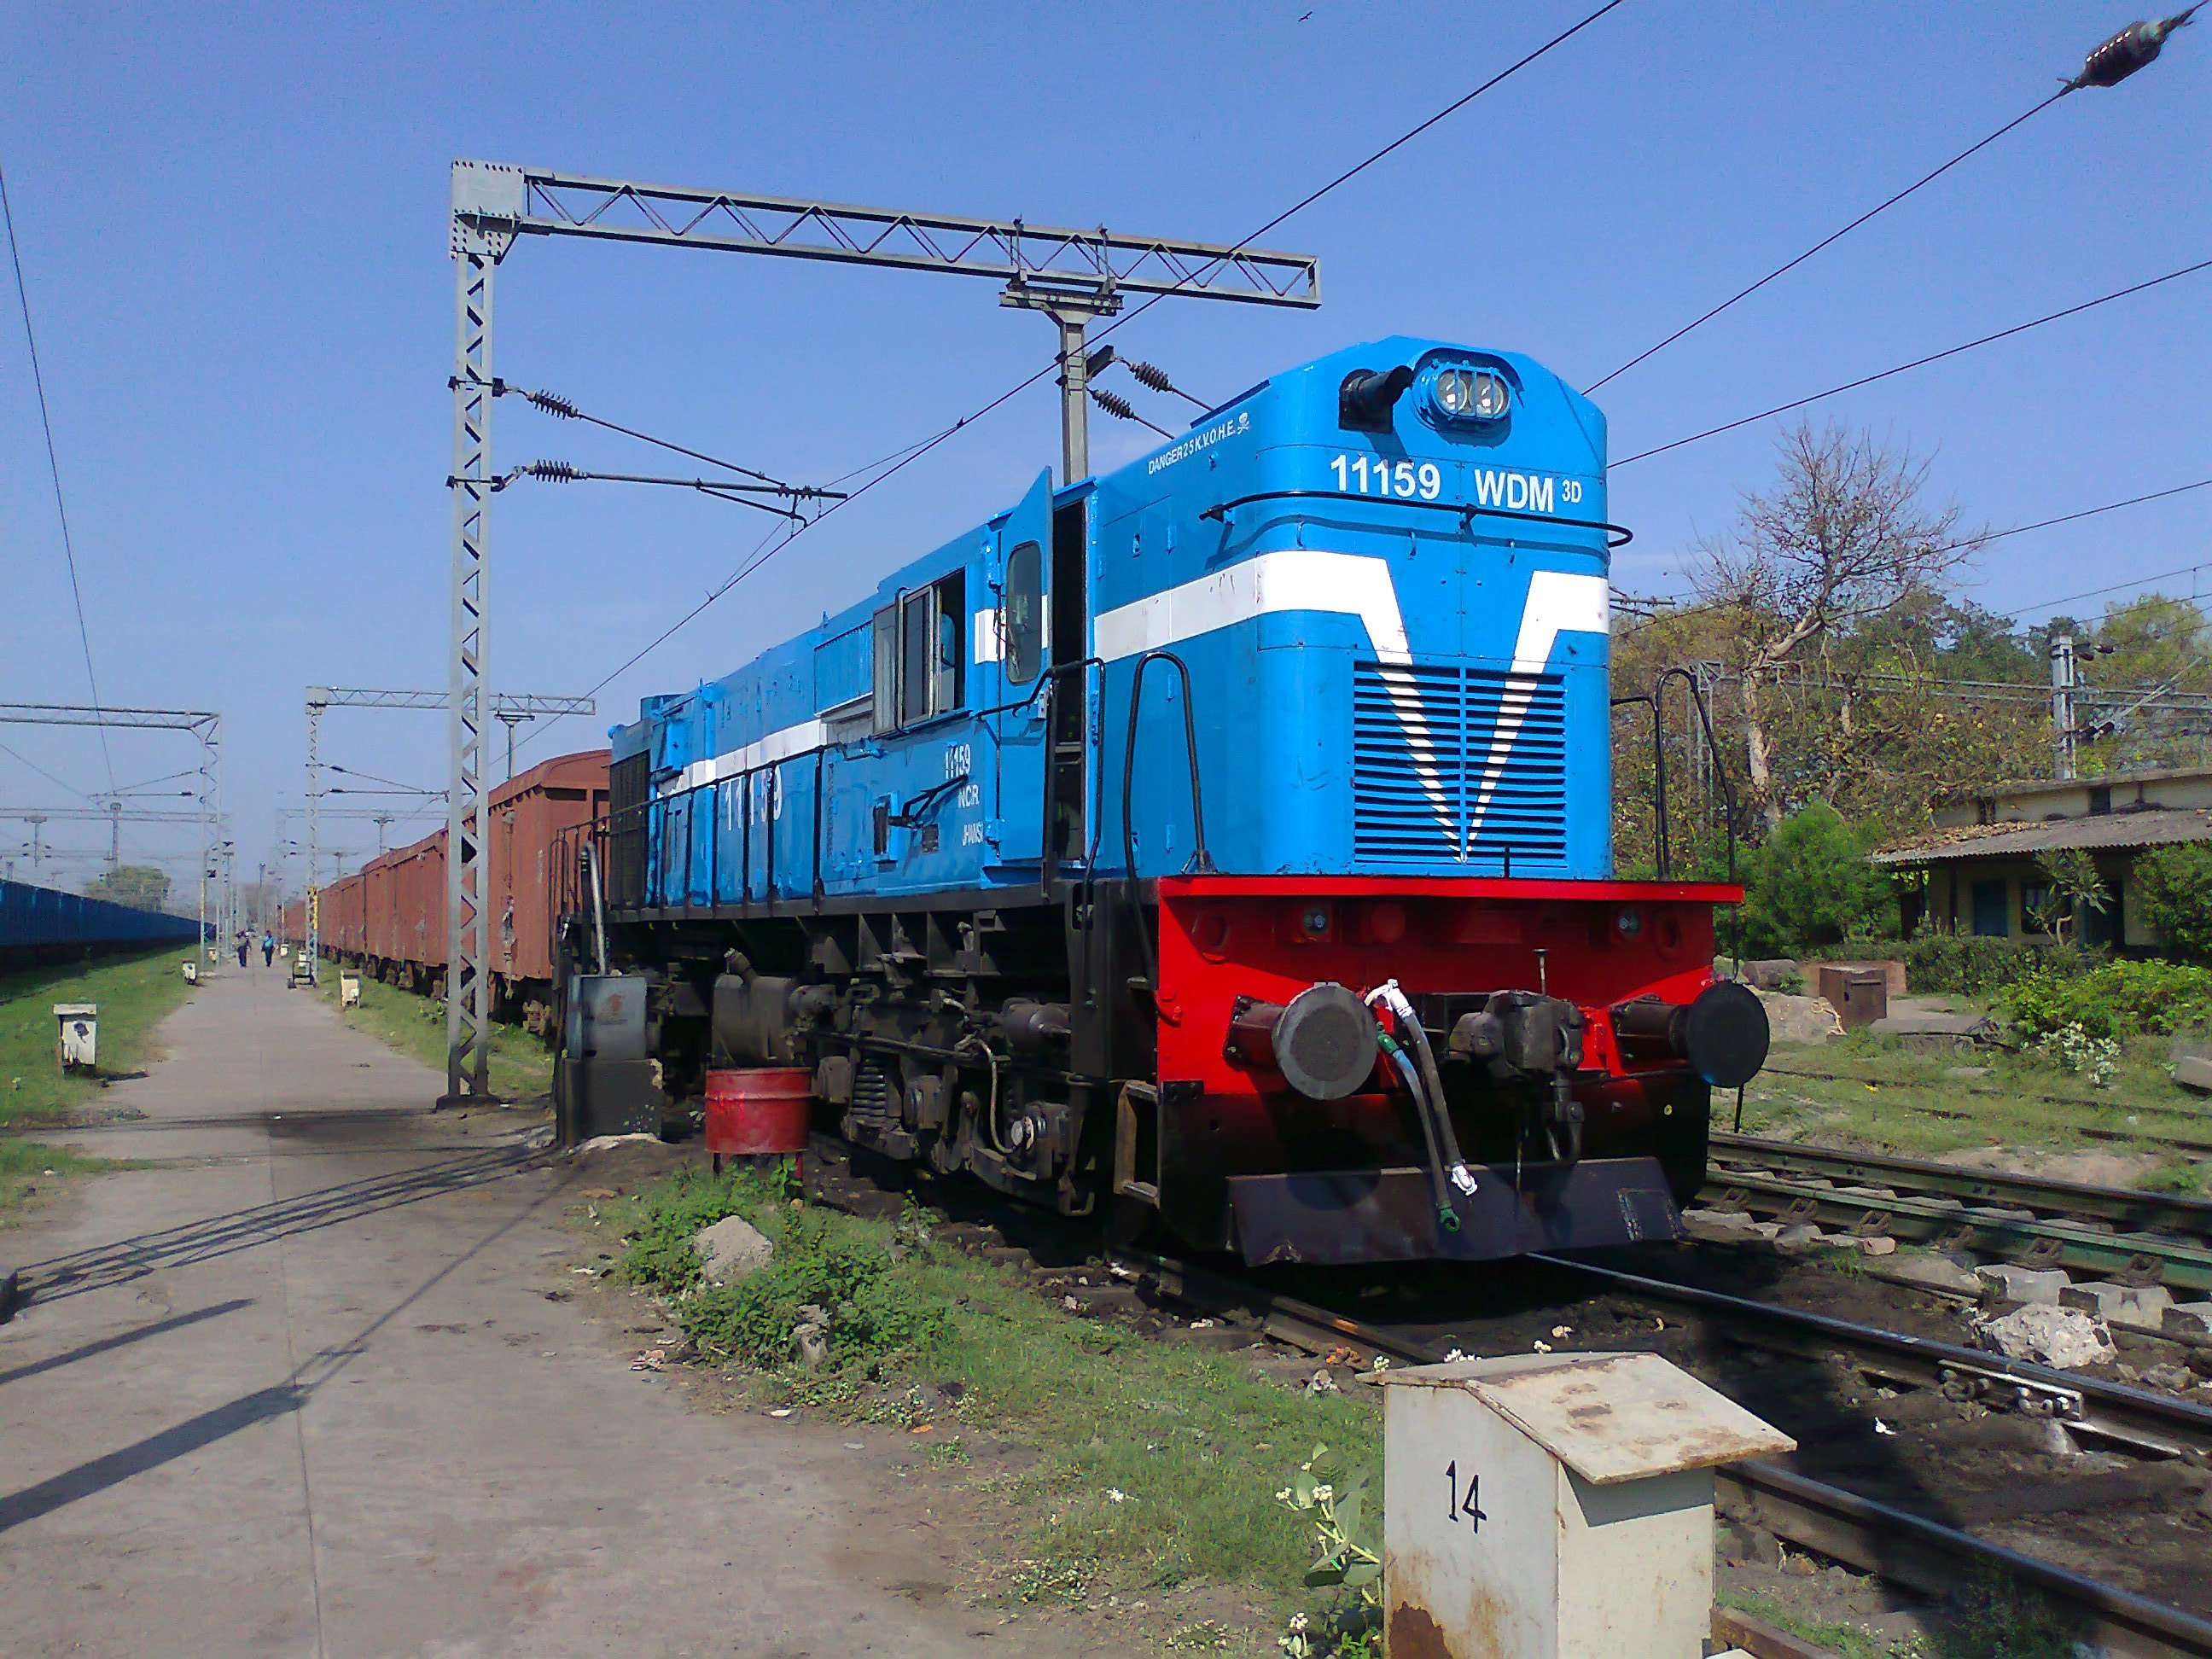 3d Wallpaper In Ludhiana File Freight Train With Wdm3d Loco At Lucknow 01 Jpg